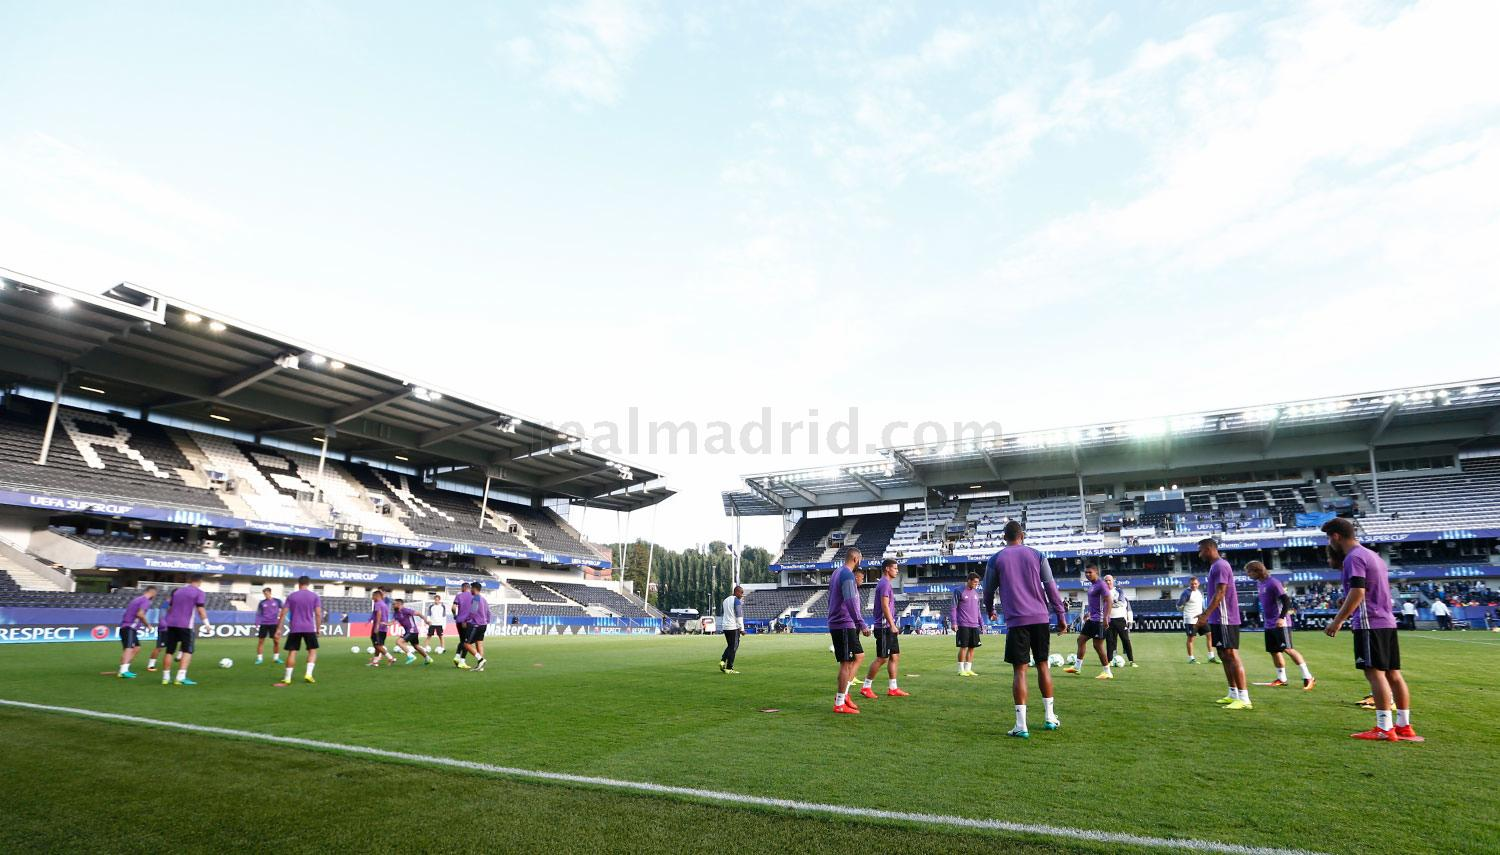 Real Madrid - Entrenamiento del Real Madrid en Trondheim - 08-08-2016